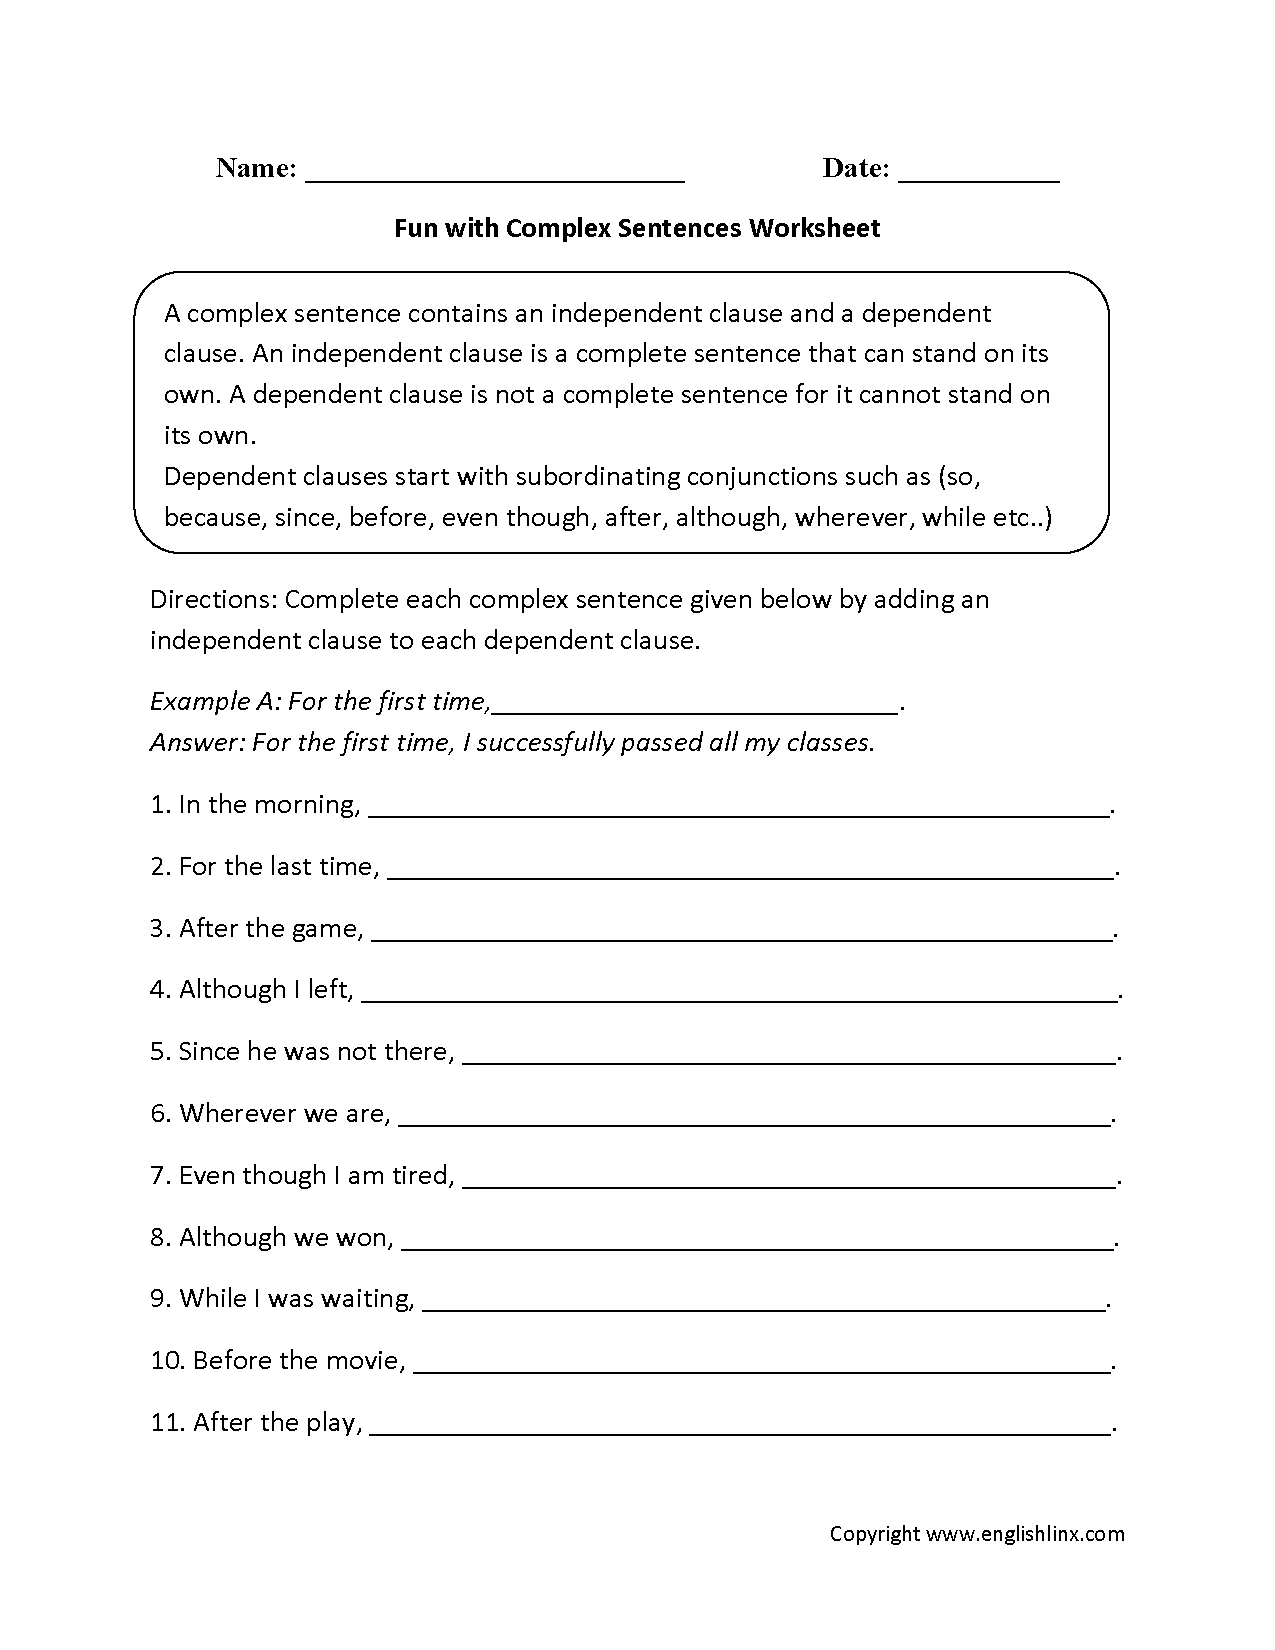 Complex Sentences Worksheets   Fun with Complex Sentences Worksheet    Complex sentences worksheets [ 1650 x 1275 Pixel ]